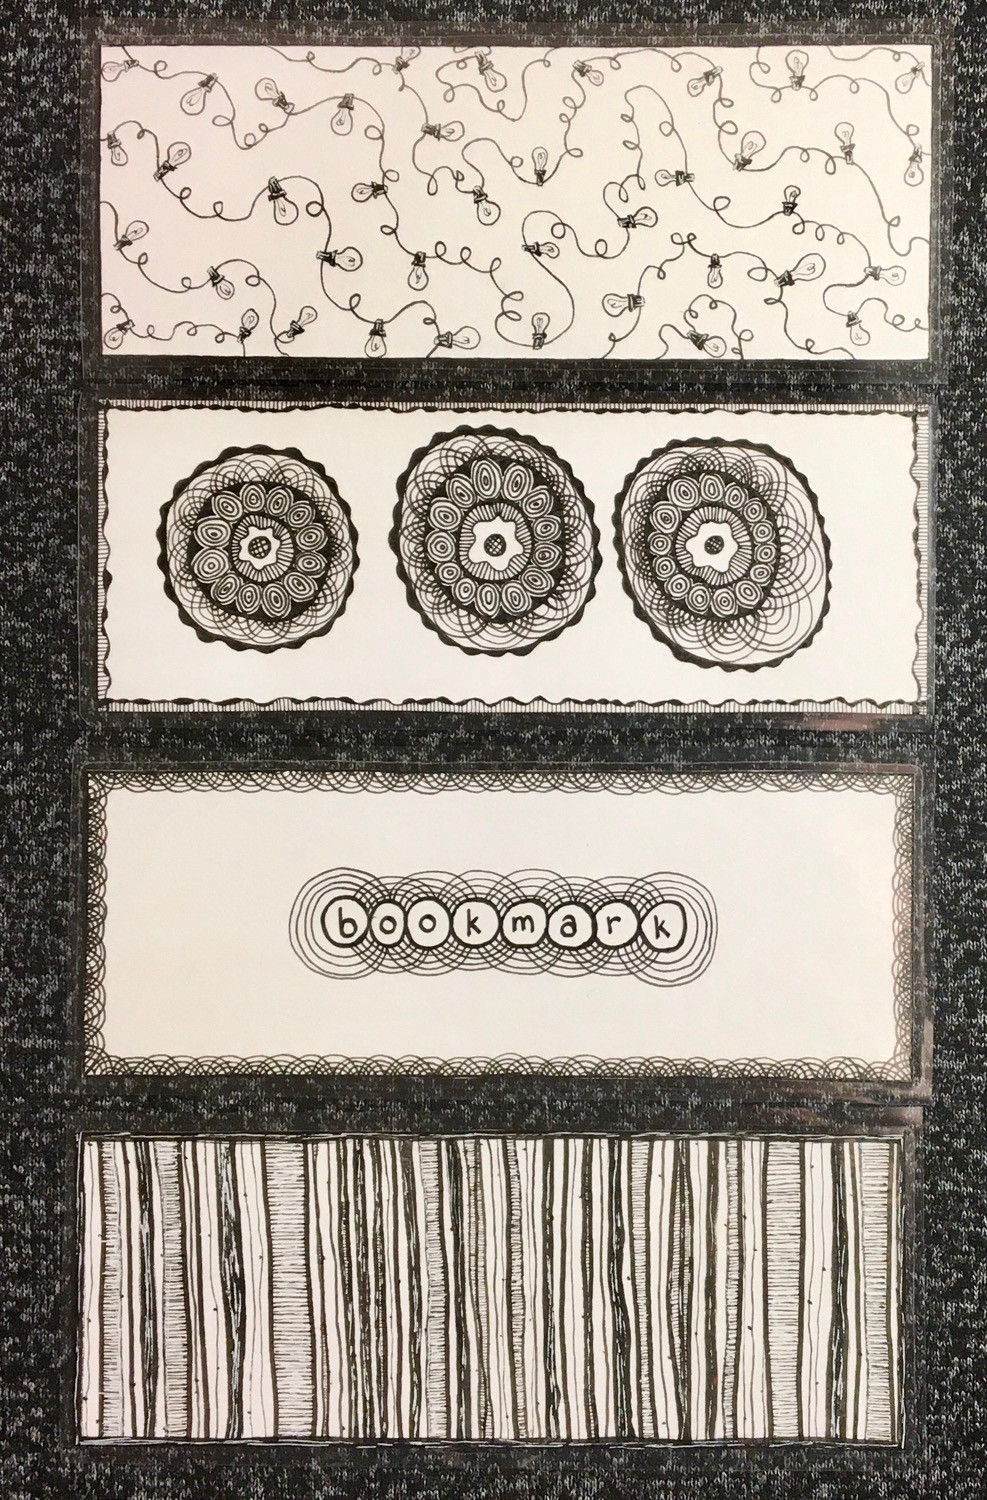 Hand drawn doodled bookmarks in black and white